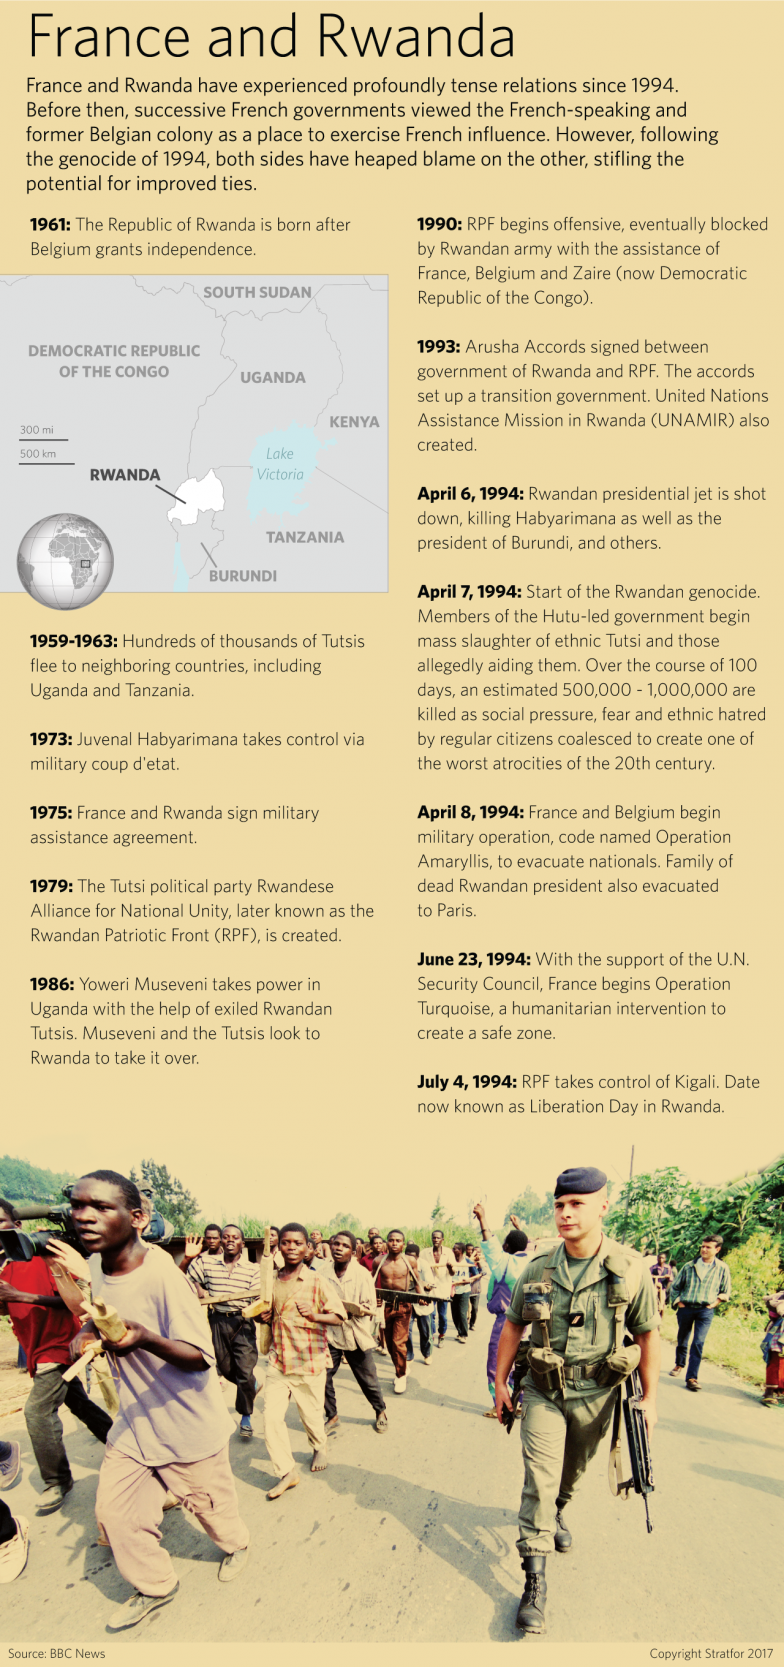 A Rwandan timeline. France and Rwanda have experienced tense relations since 1994.